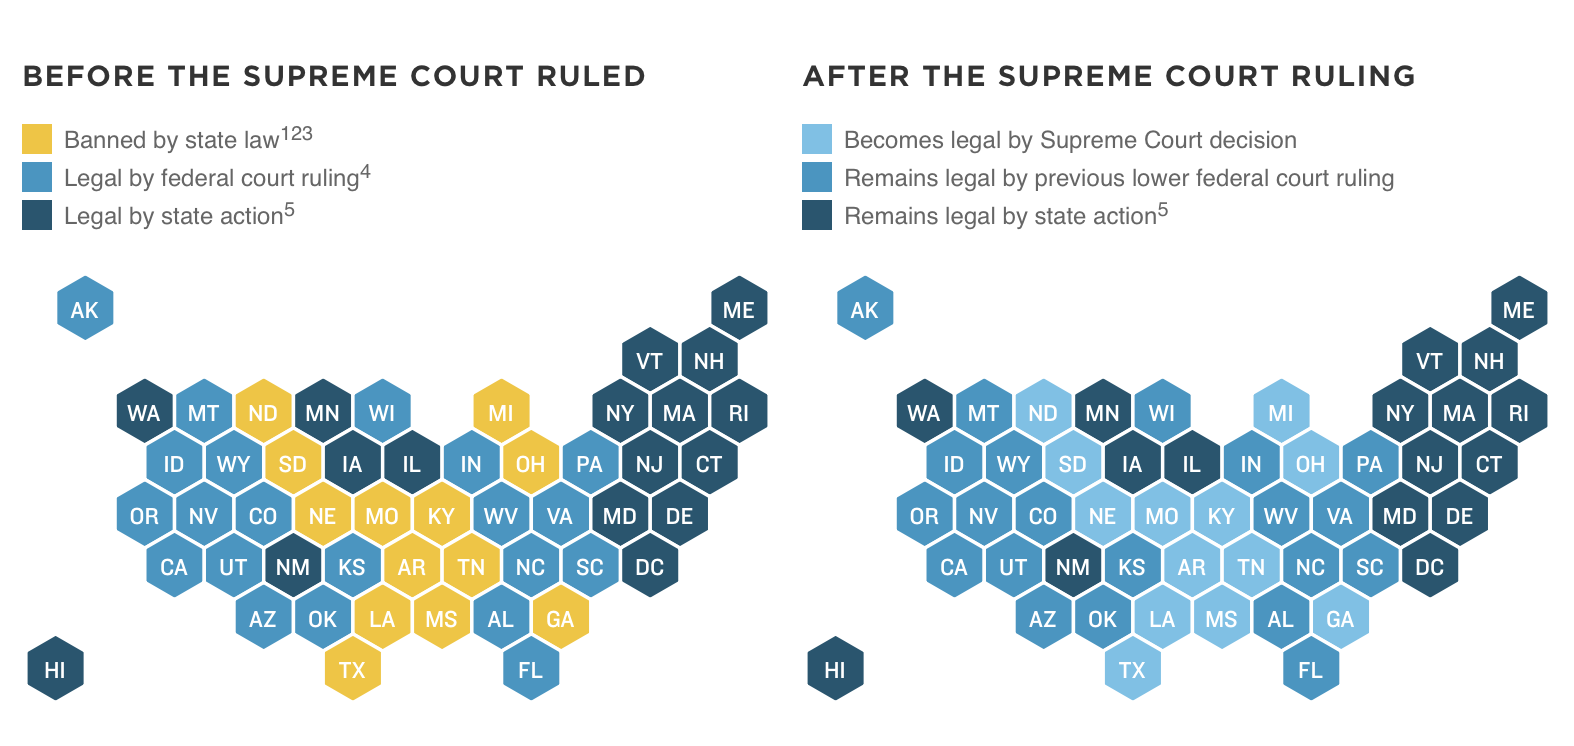 Is The Supreme Court Ready To Settle The Gay Marriage Battle